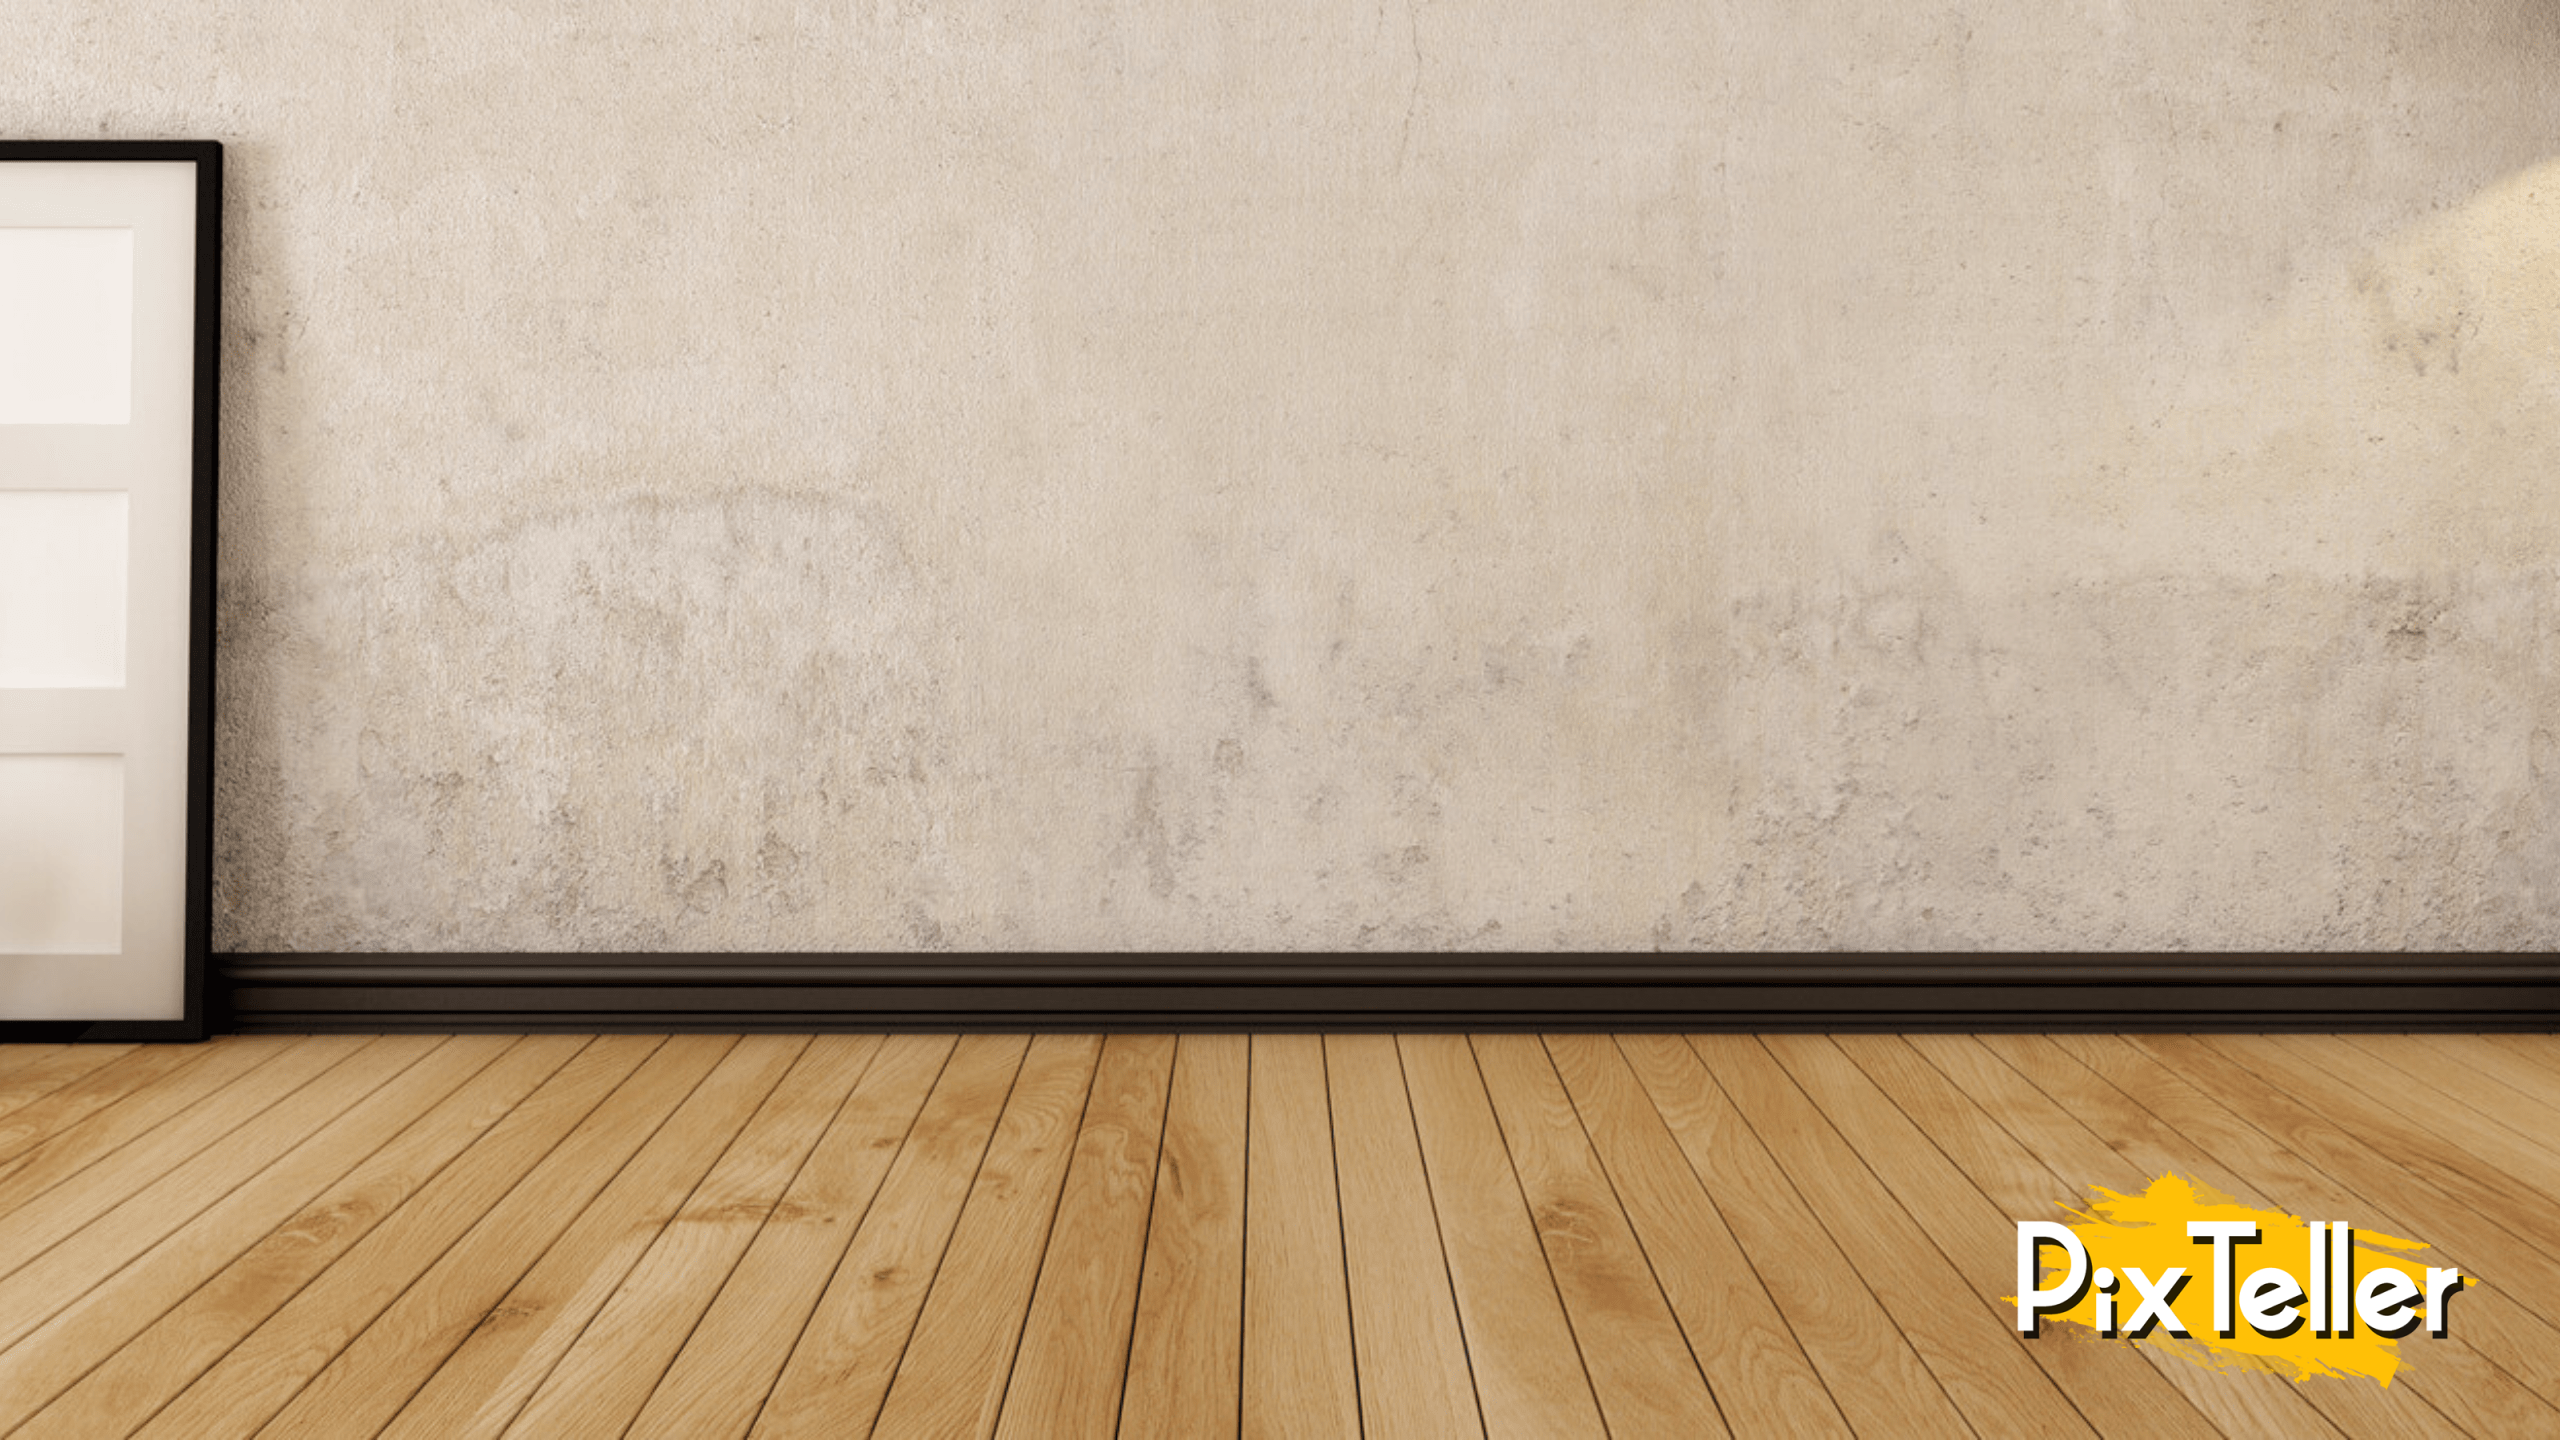 Floor,                Wall,                Wood,                Table,                Flooring,                Furniture,                Stain,                Hardwood,                Product,                Design,                Backgrounds,                Passion,                Simple,                 Free Image